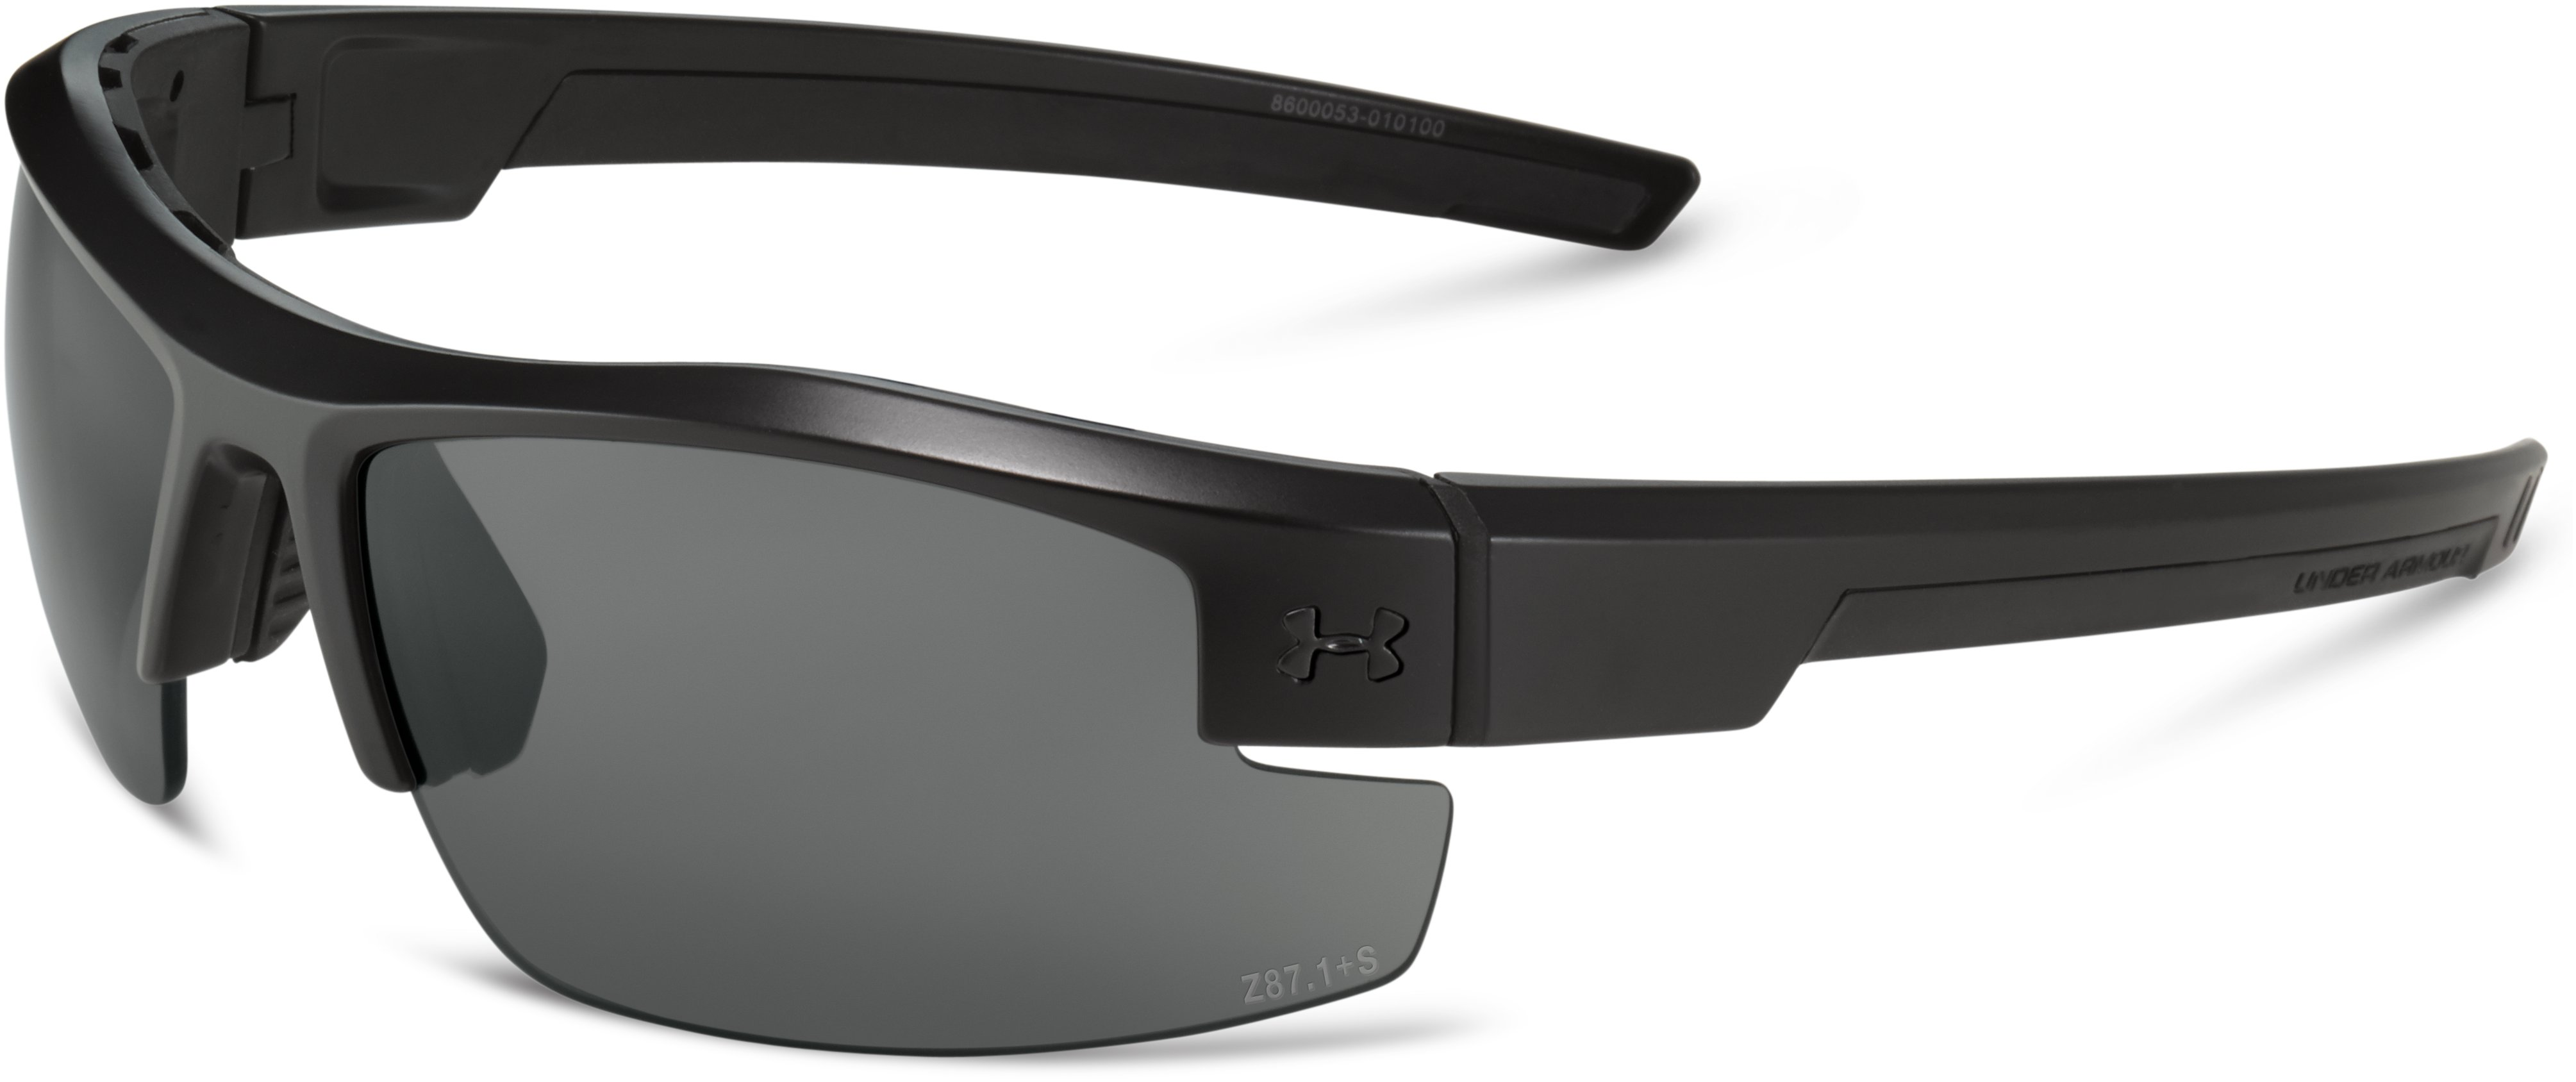 UA Reliance Tactical Sunglasses, Satin Black, undefined